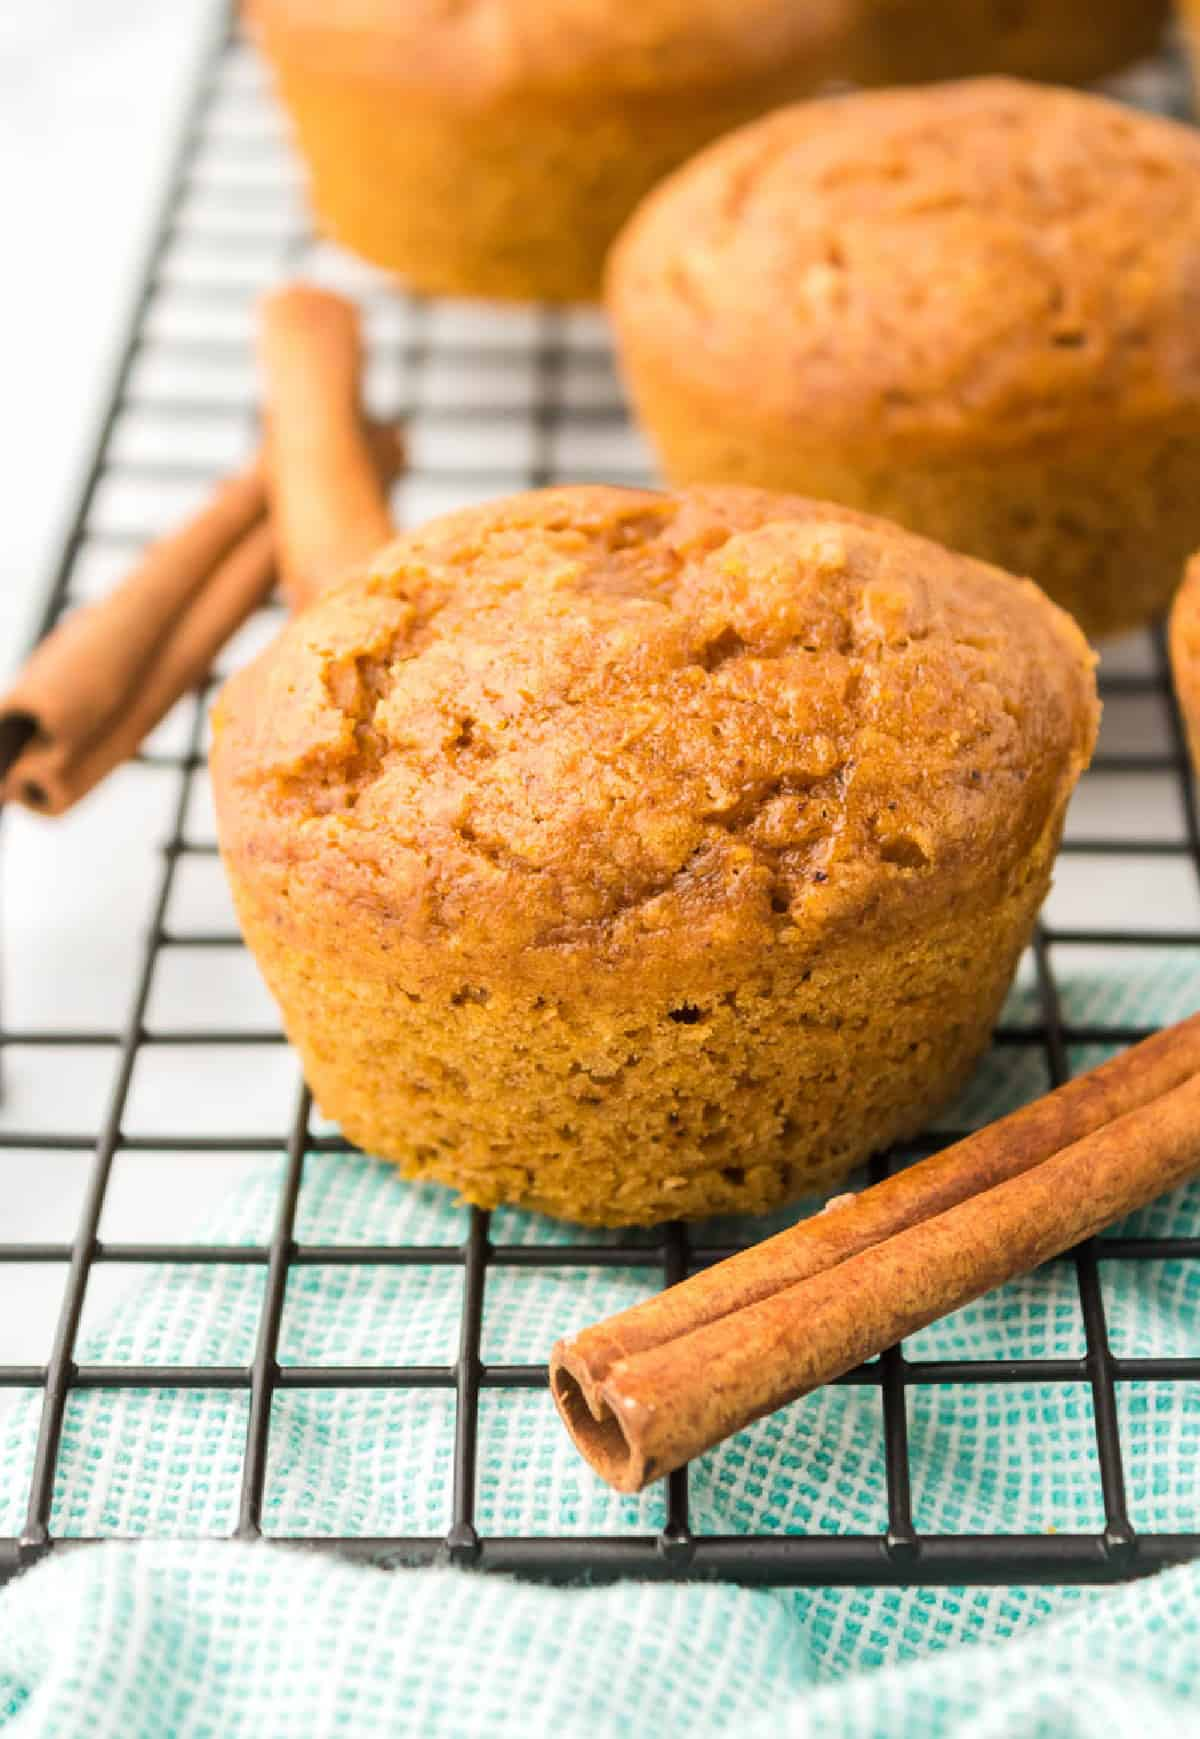 Onw muffin on a cooling rack with cinnamon sticks.